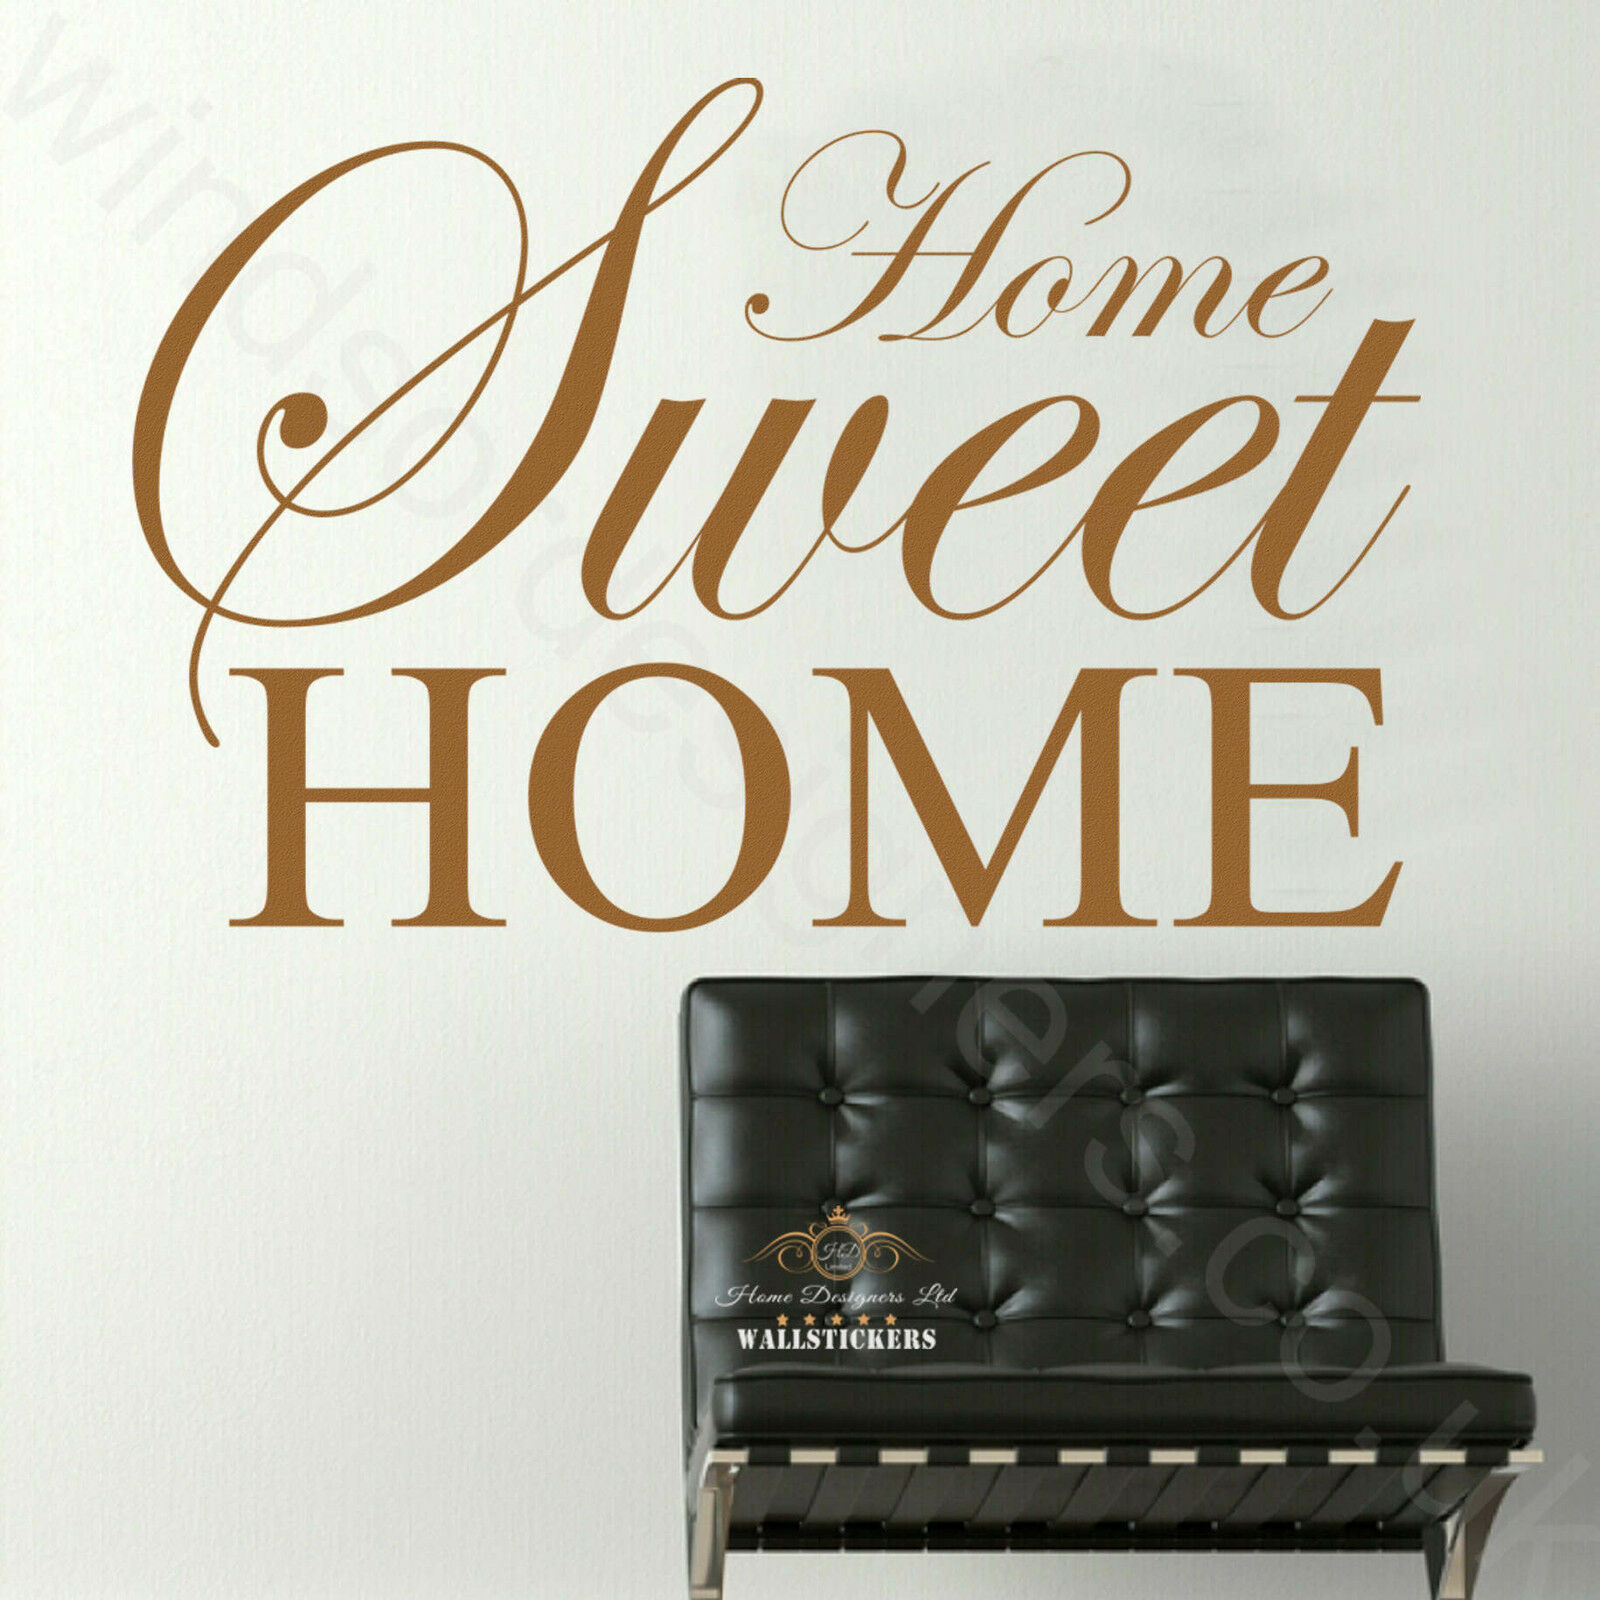 home sweet home interiors home sweet home wall sticker quote large decor ebay 18435